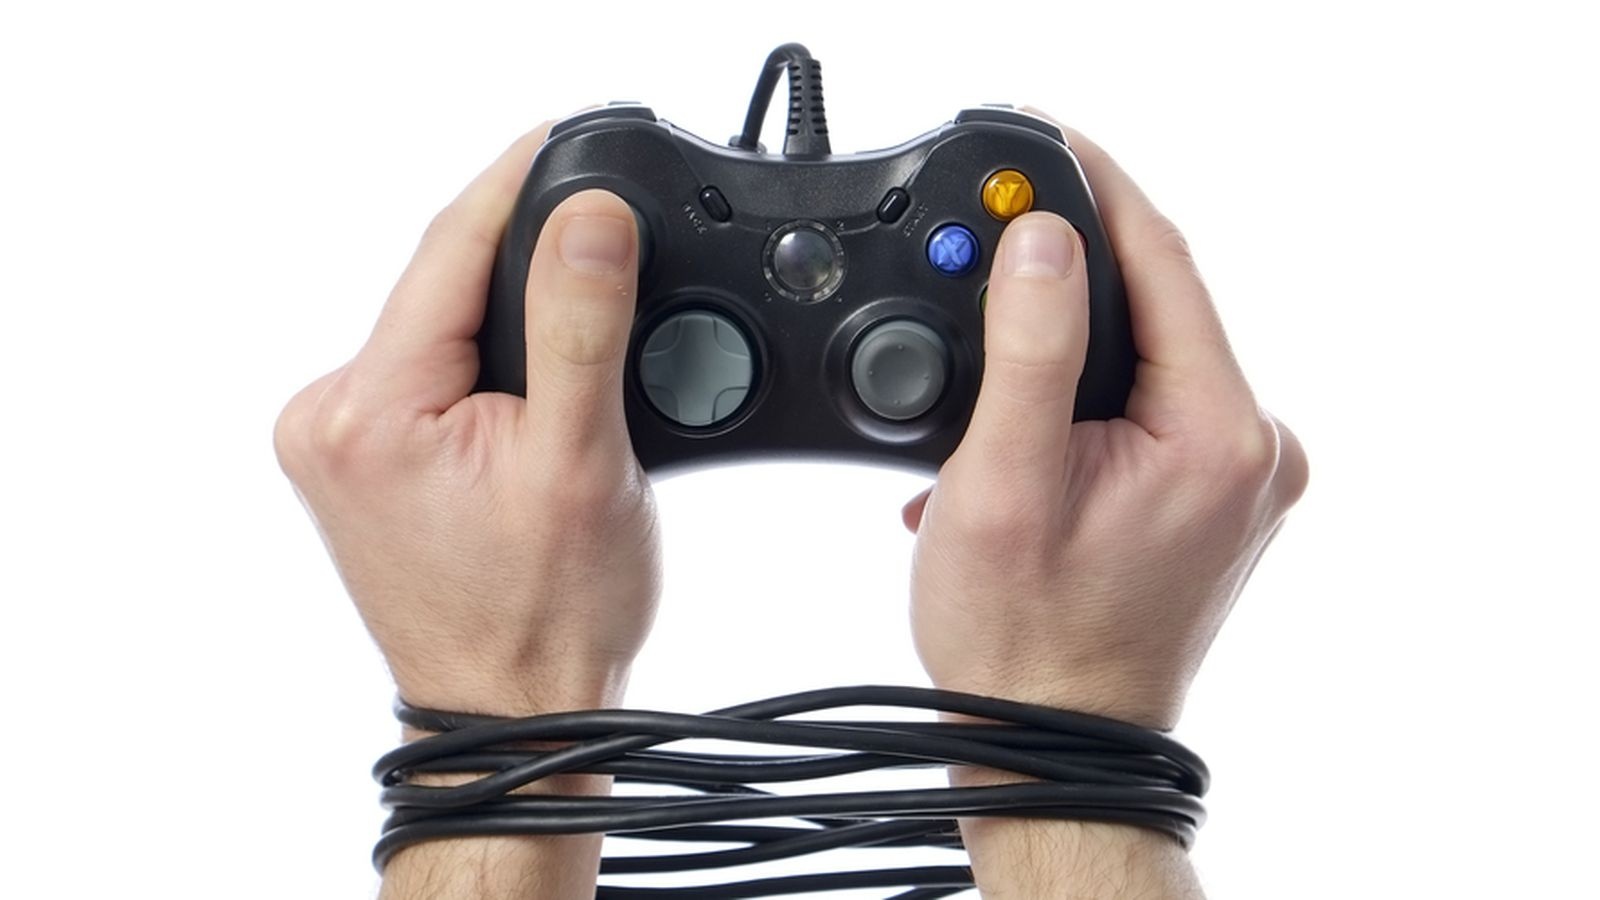 the different symptoms of online gaming addiction Related articles signs your child needs gaming addiction treatment - gaming addiction is a modern problem that involves an obsession with game play and an inability to stop playing video and other types of games on one's own.